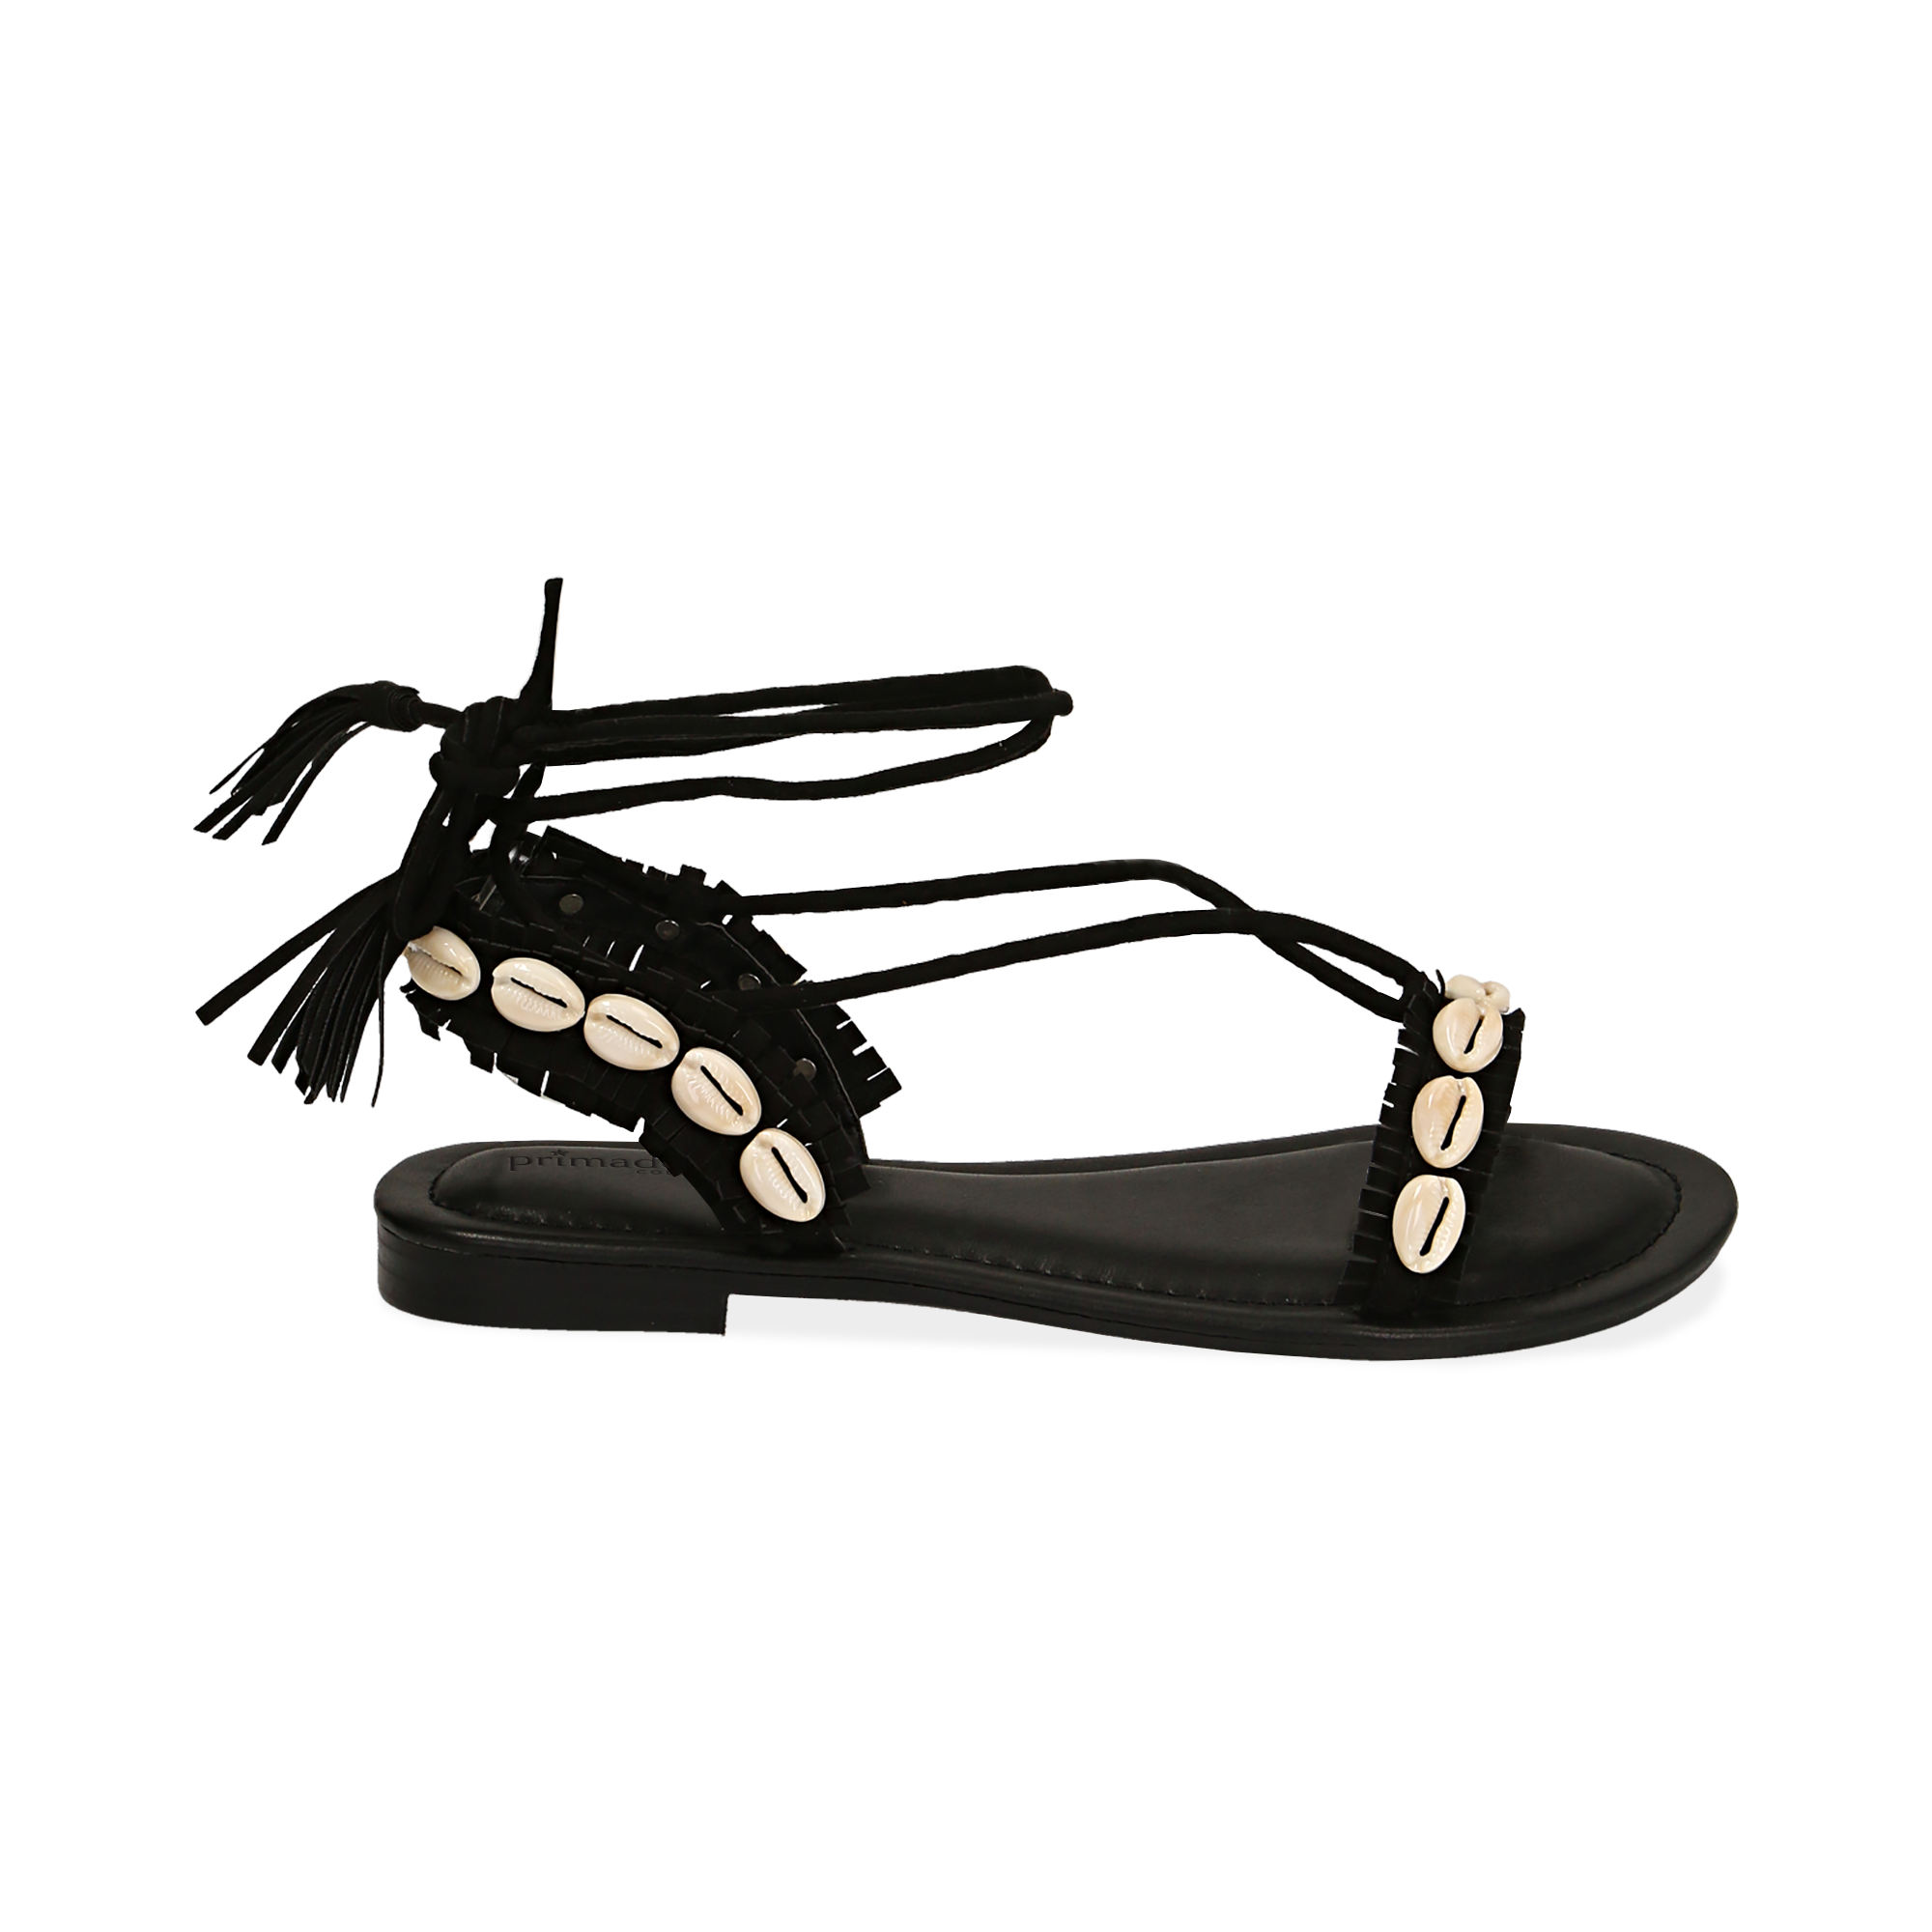 Sandali lace-up neri in microfibra con conchiglie